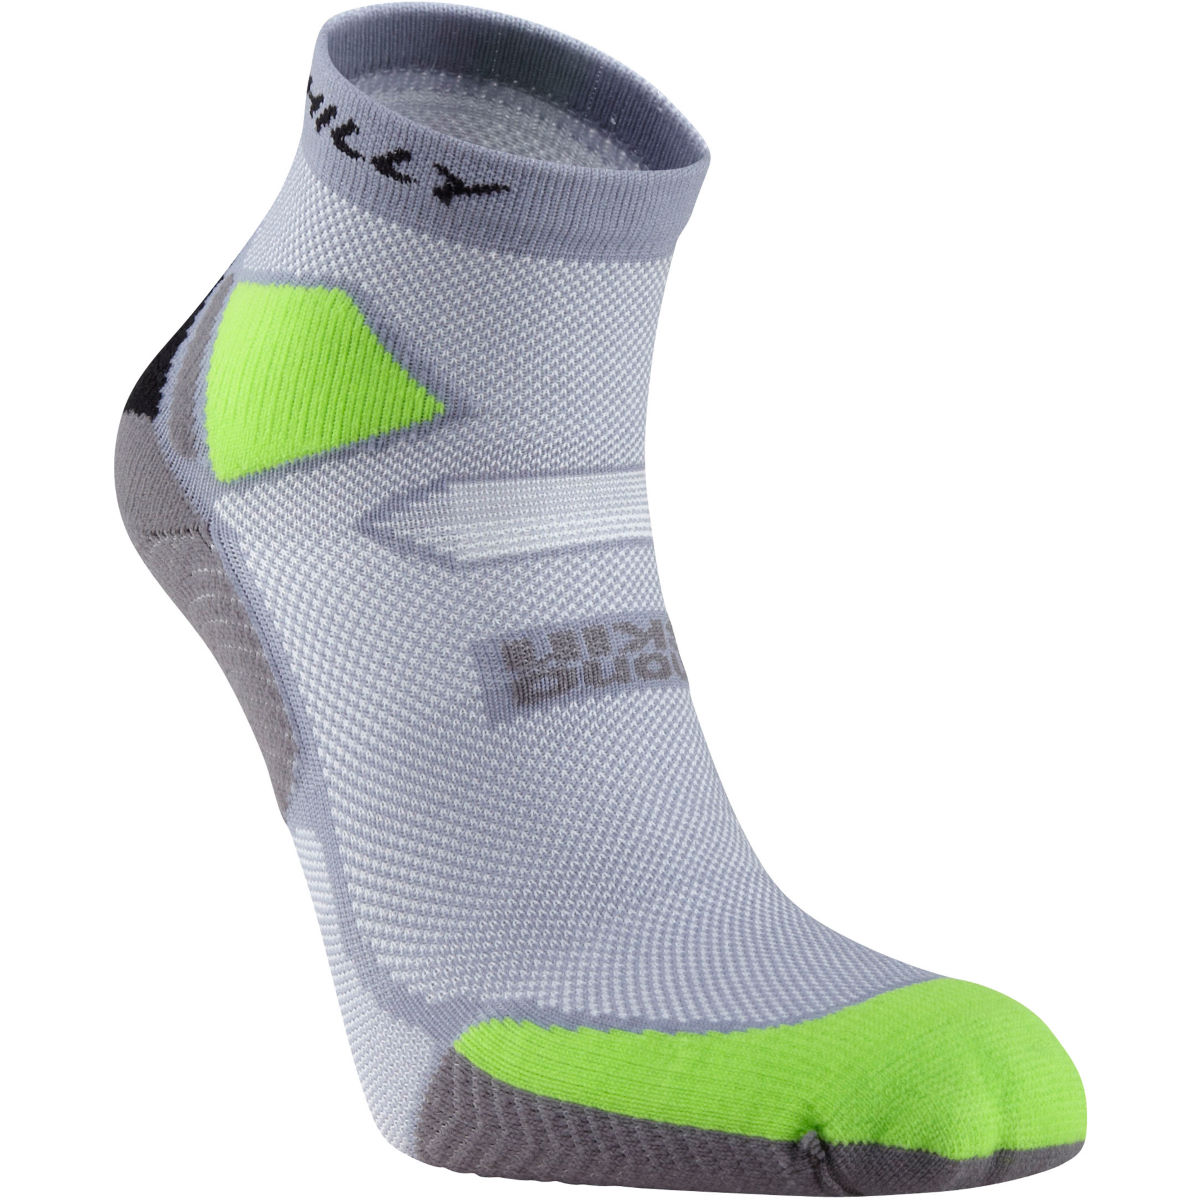 Hilly - Skyline Anklet - L Grey/Lime/Black  Chaussettes